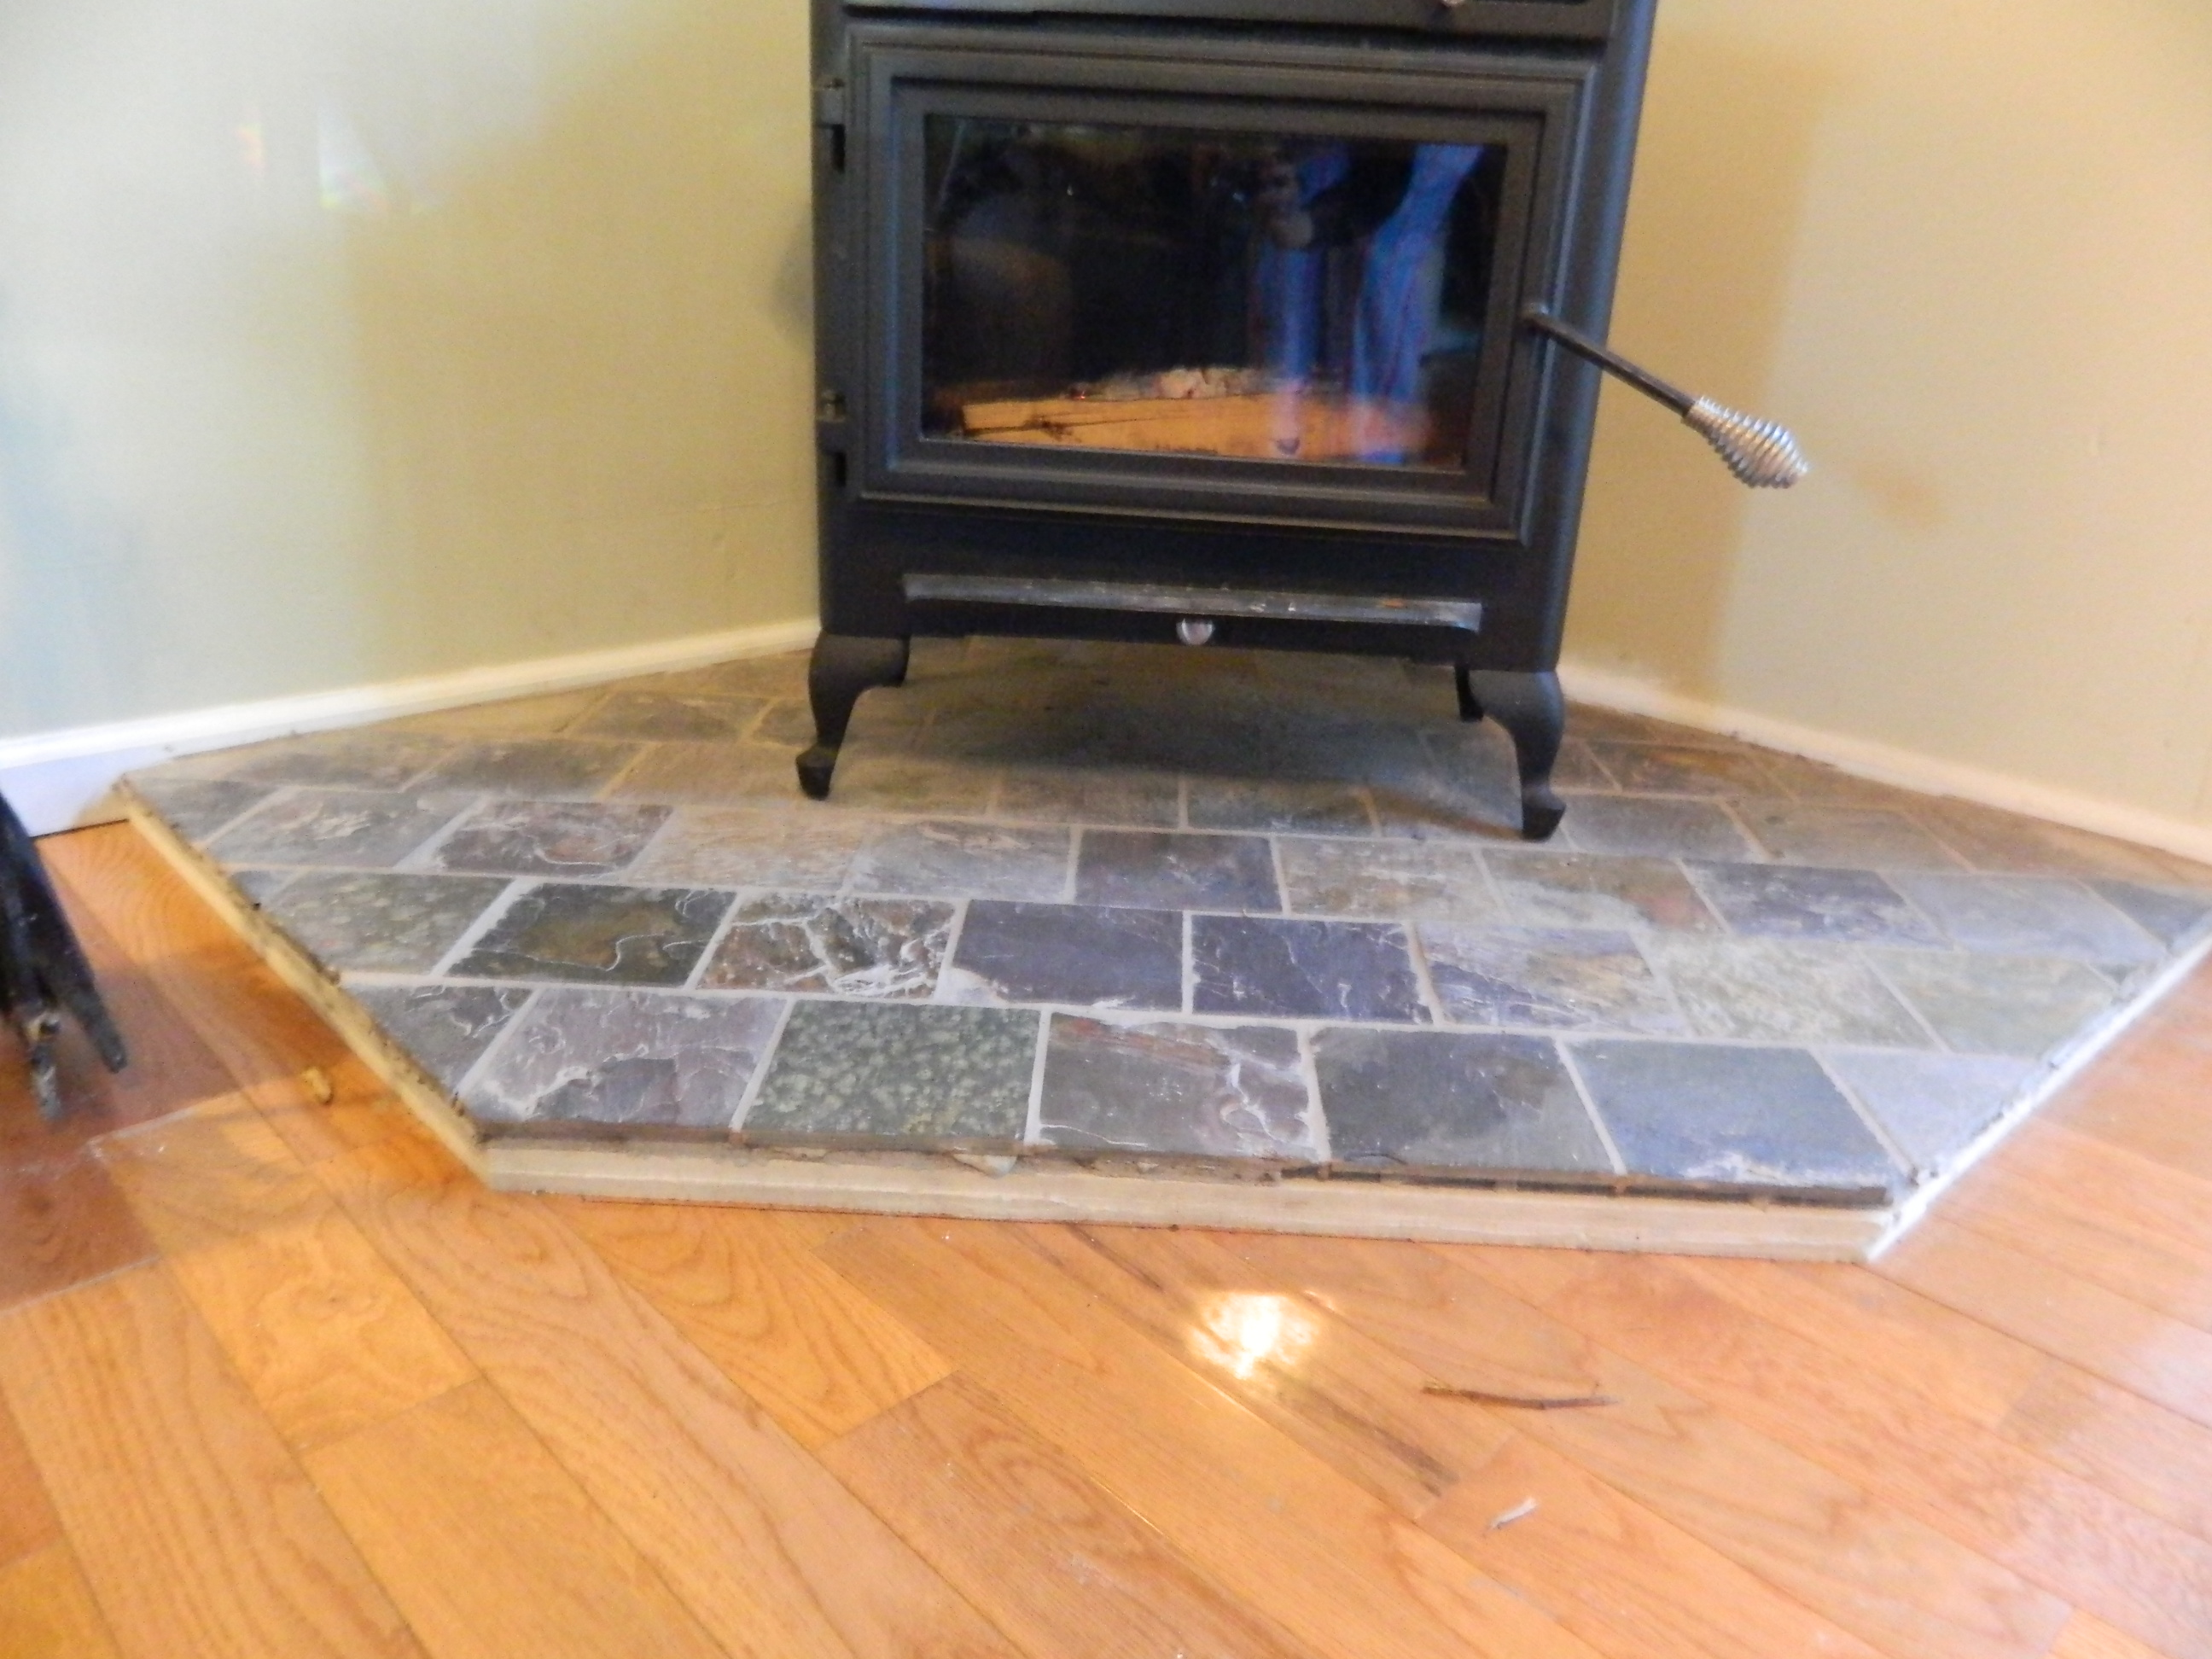 r value vs k factor hearth pads hardwood floor home